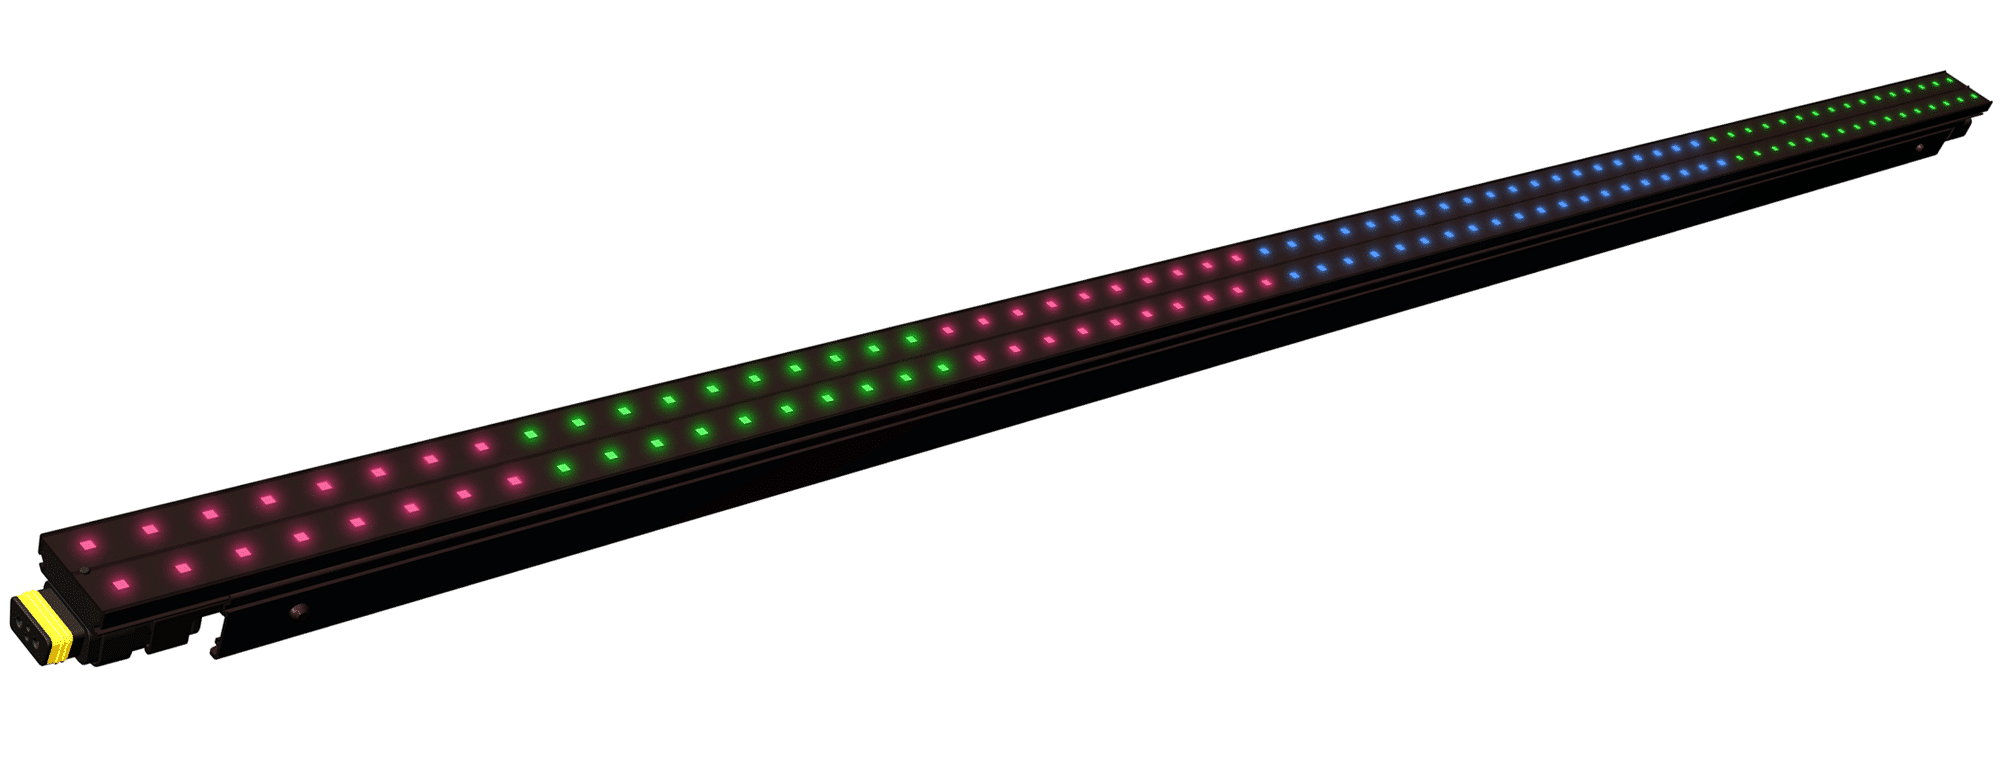 led strip video EVERY LED AS ONE PIXEL